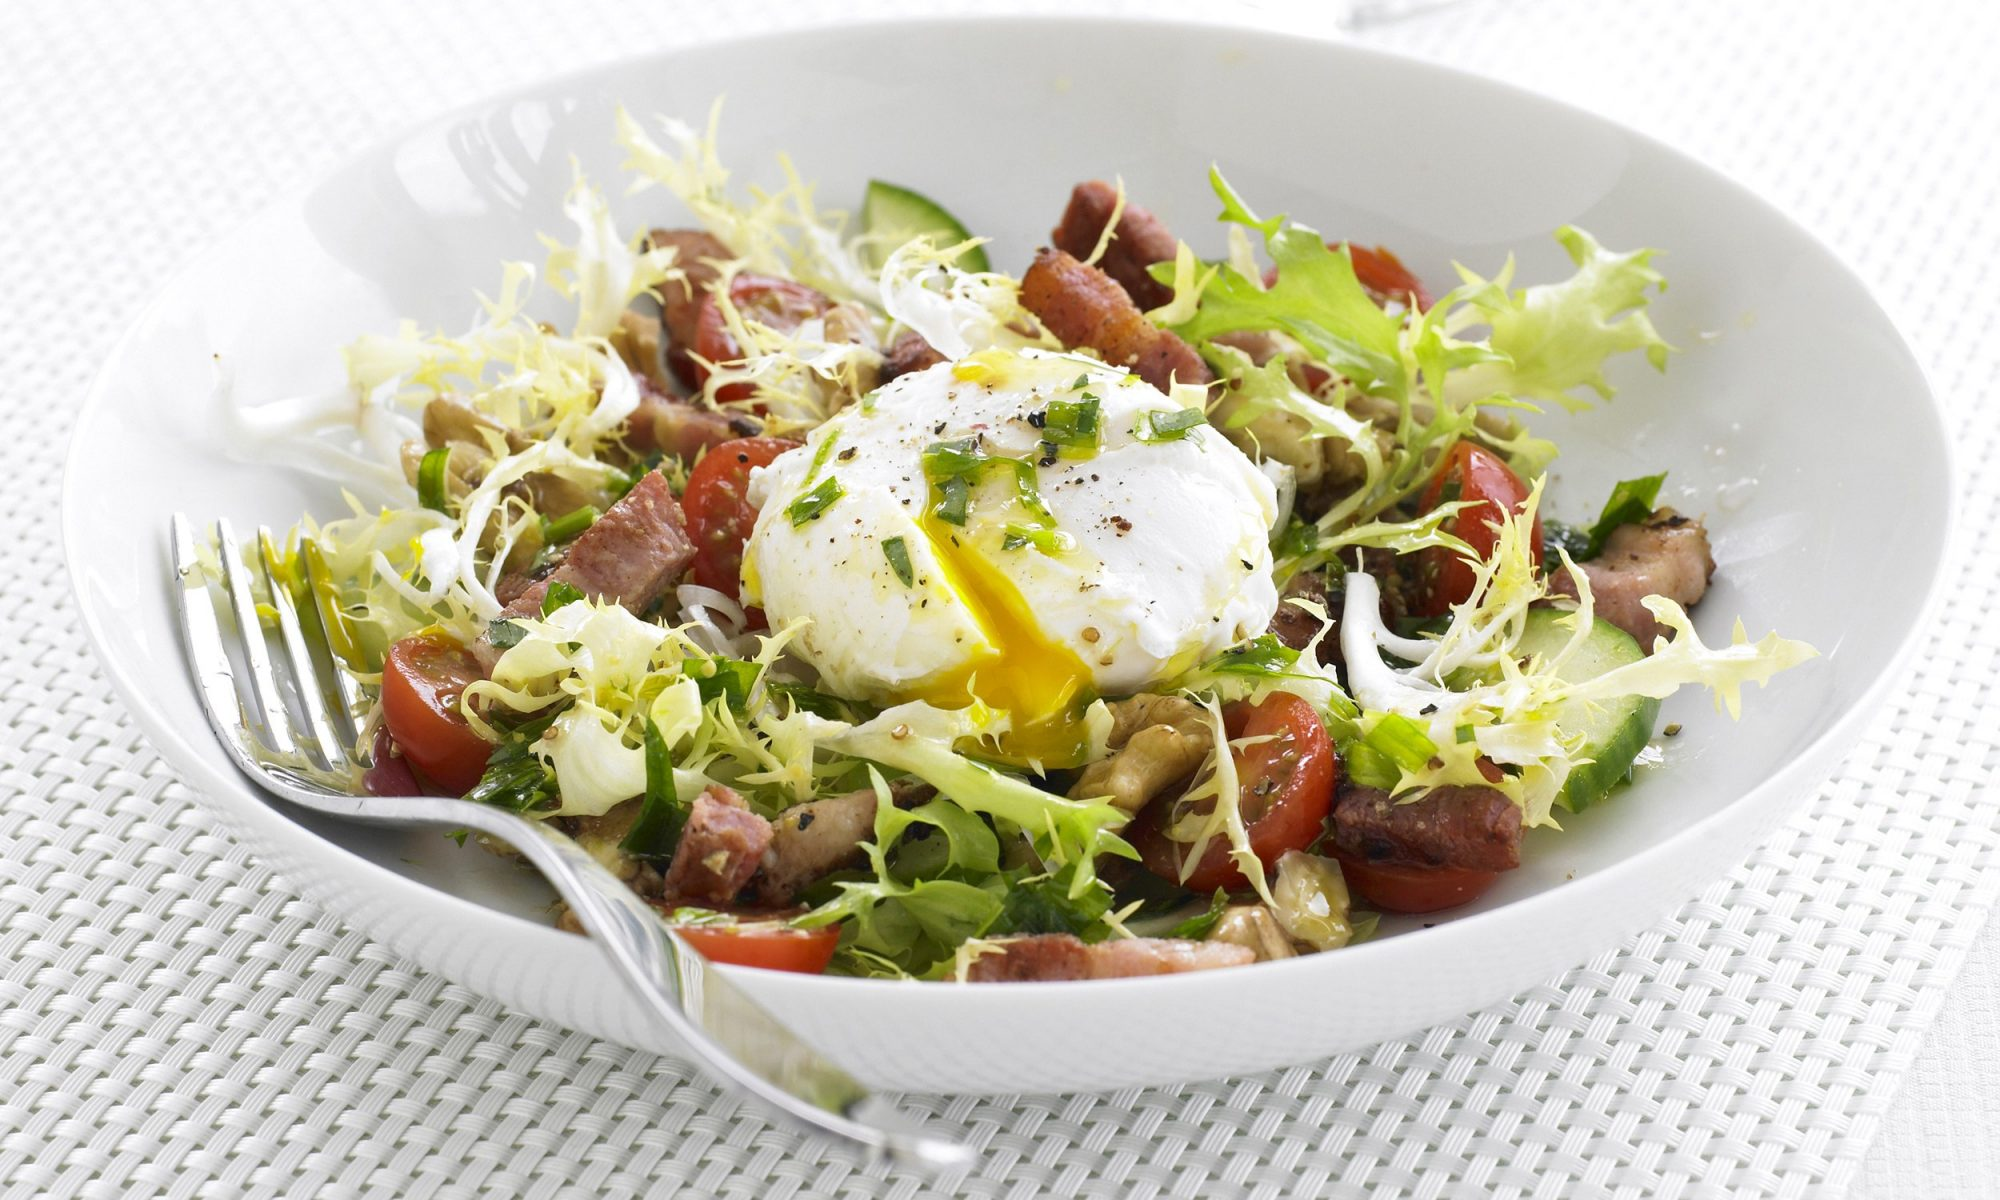 EC: Breakfast Salad Is Happening, Just Go with It